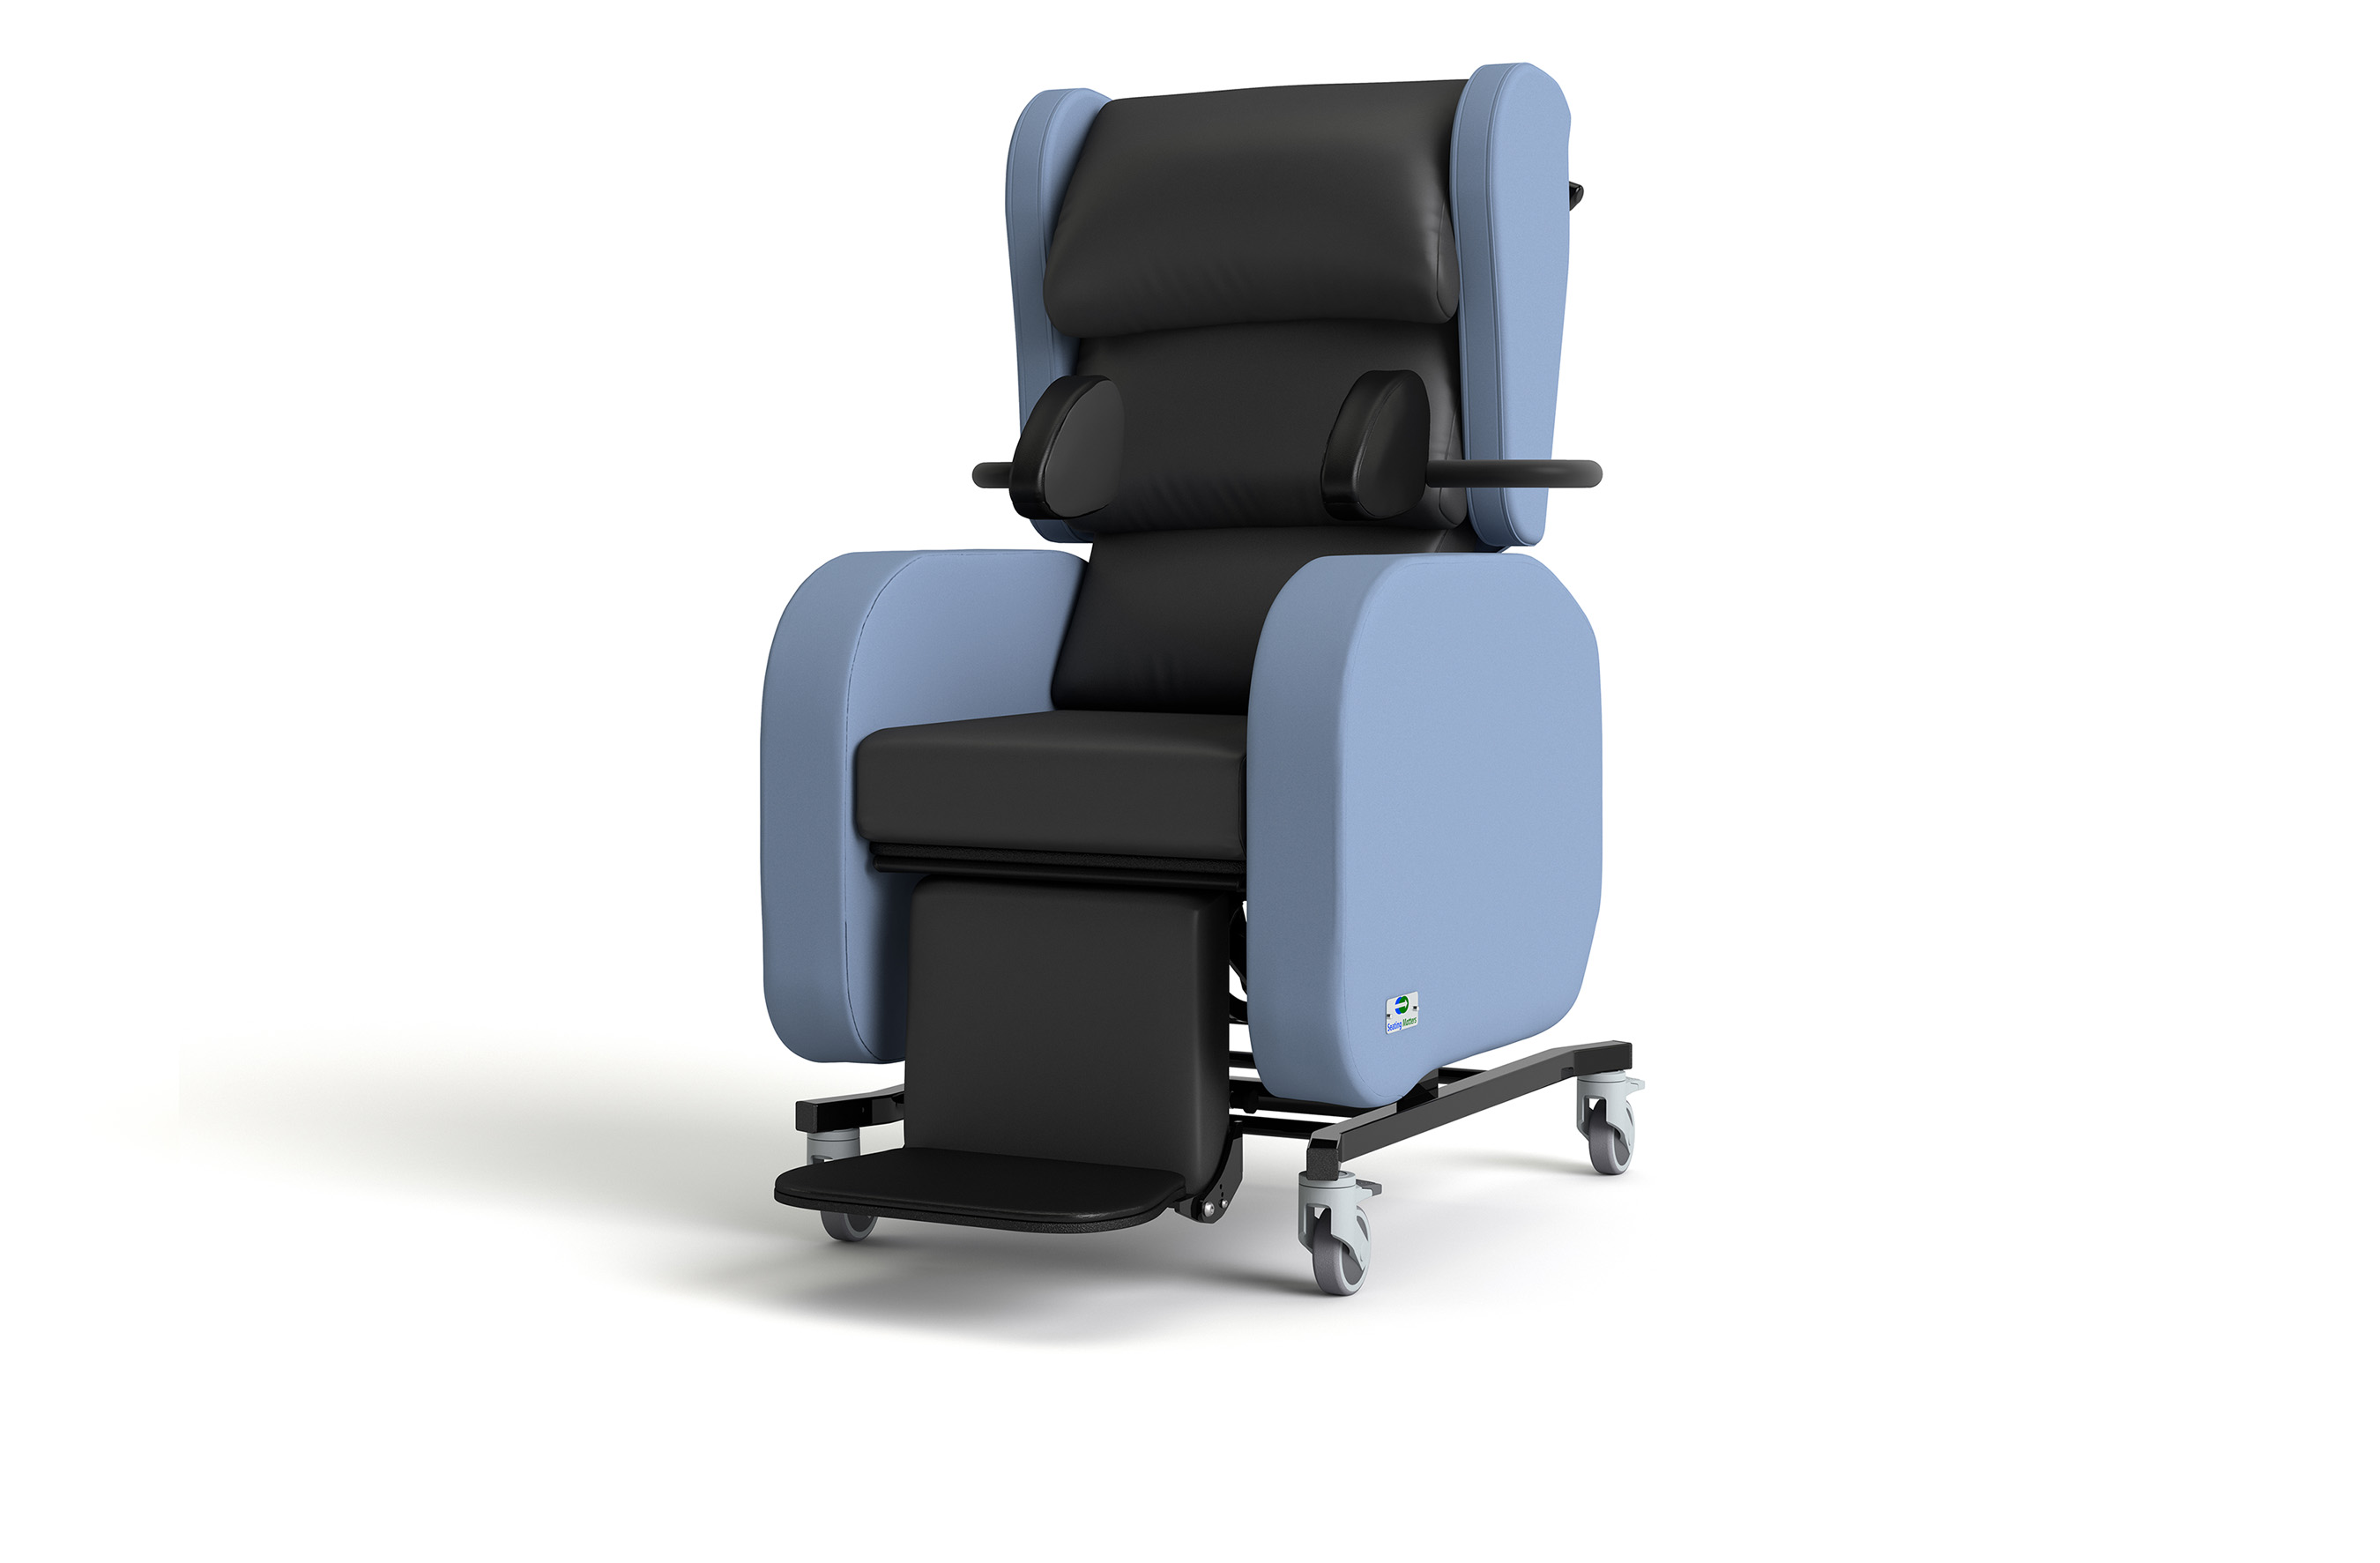 Designed to maximize comfort, adapt, and effortlessly adjust, the Sorrento™ is highly functional and easy to operate. The Sorrento designed for the patient, but with the caregiver in mind.